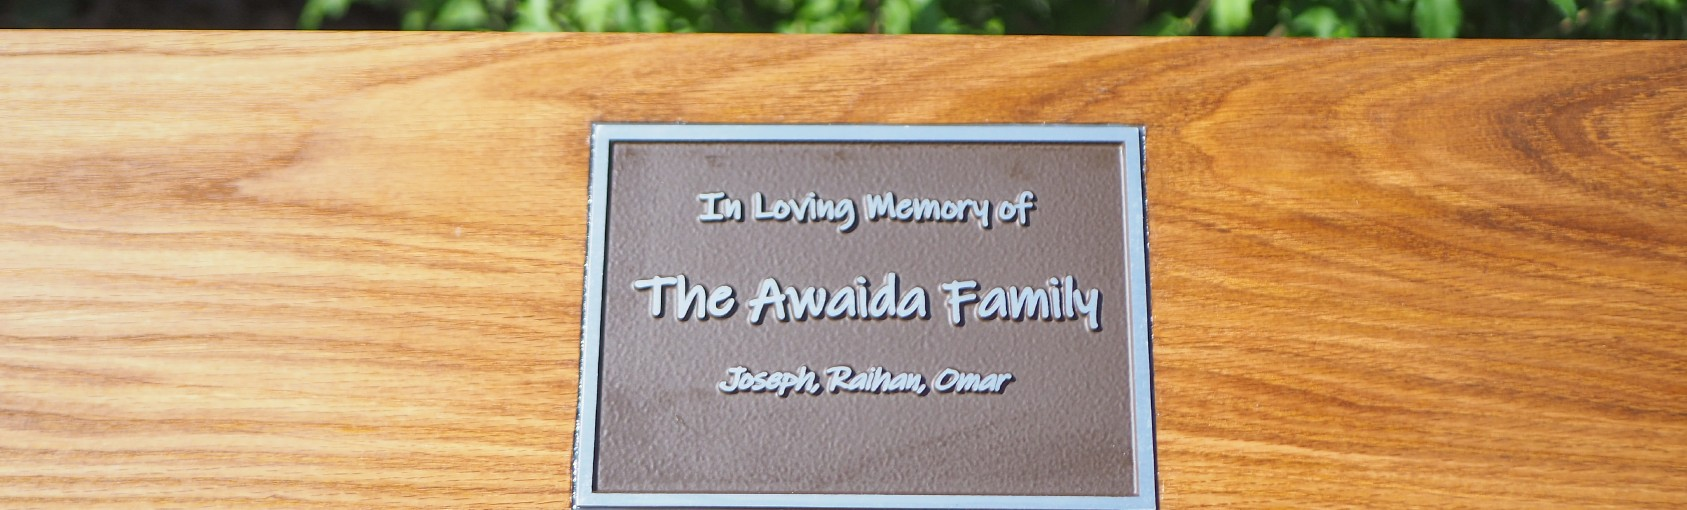 Remembering the Awaida Family - Benches at the IPCDC in Memoriam